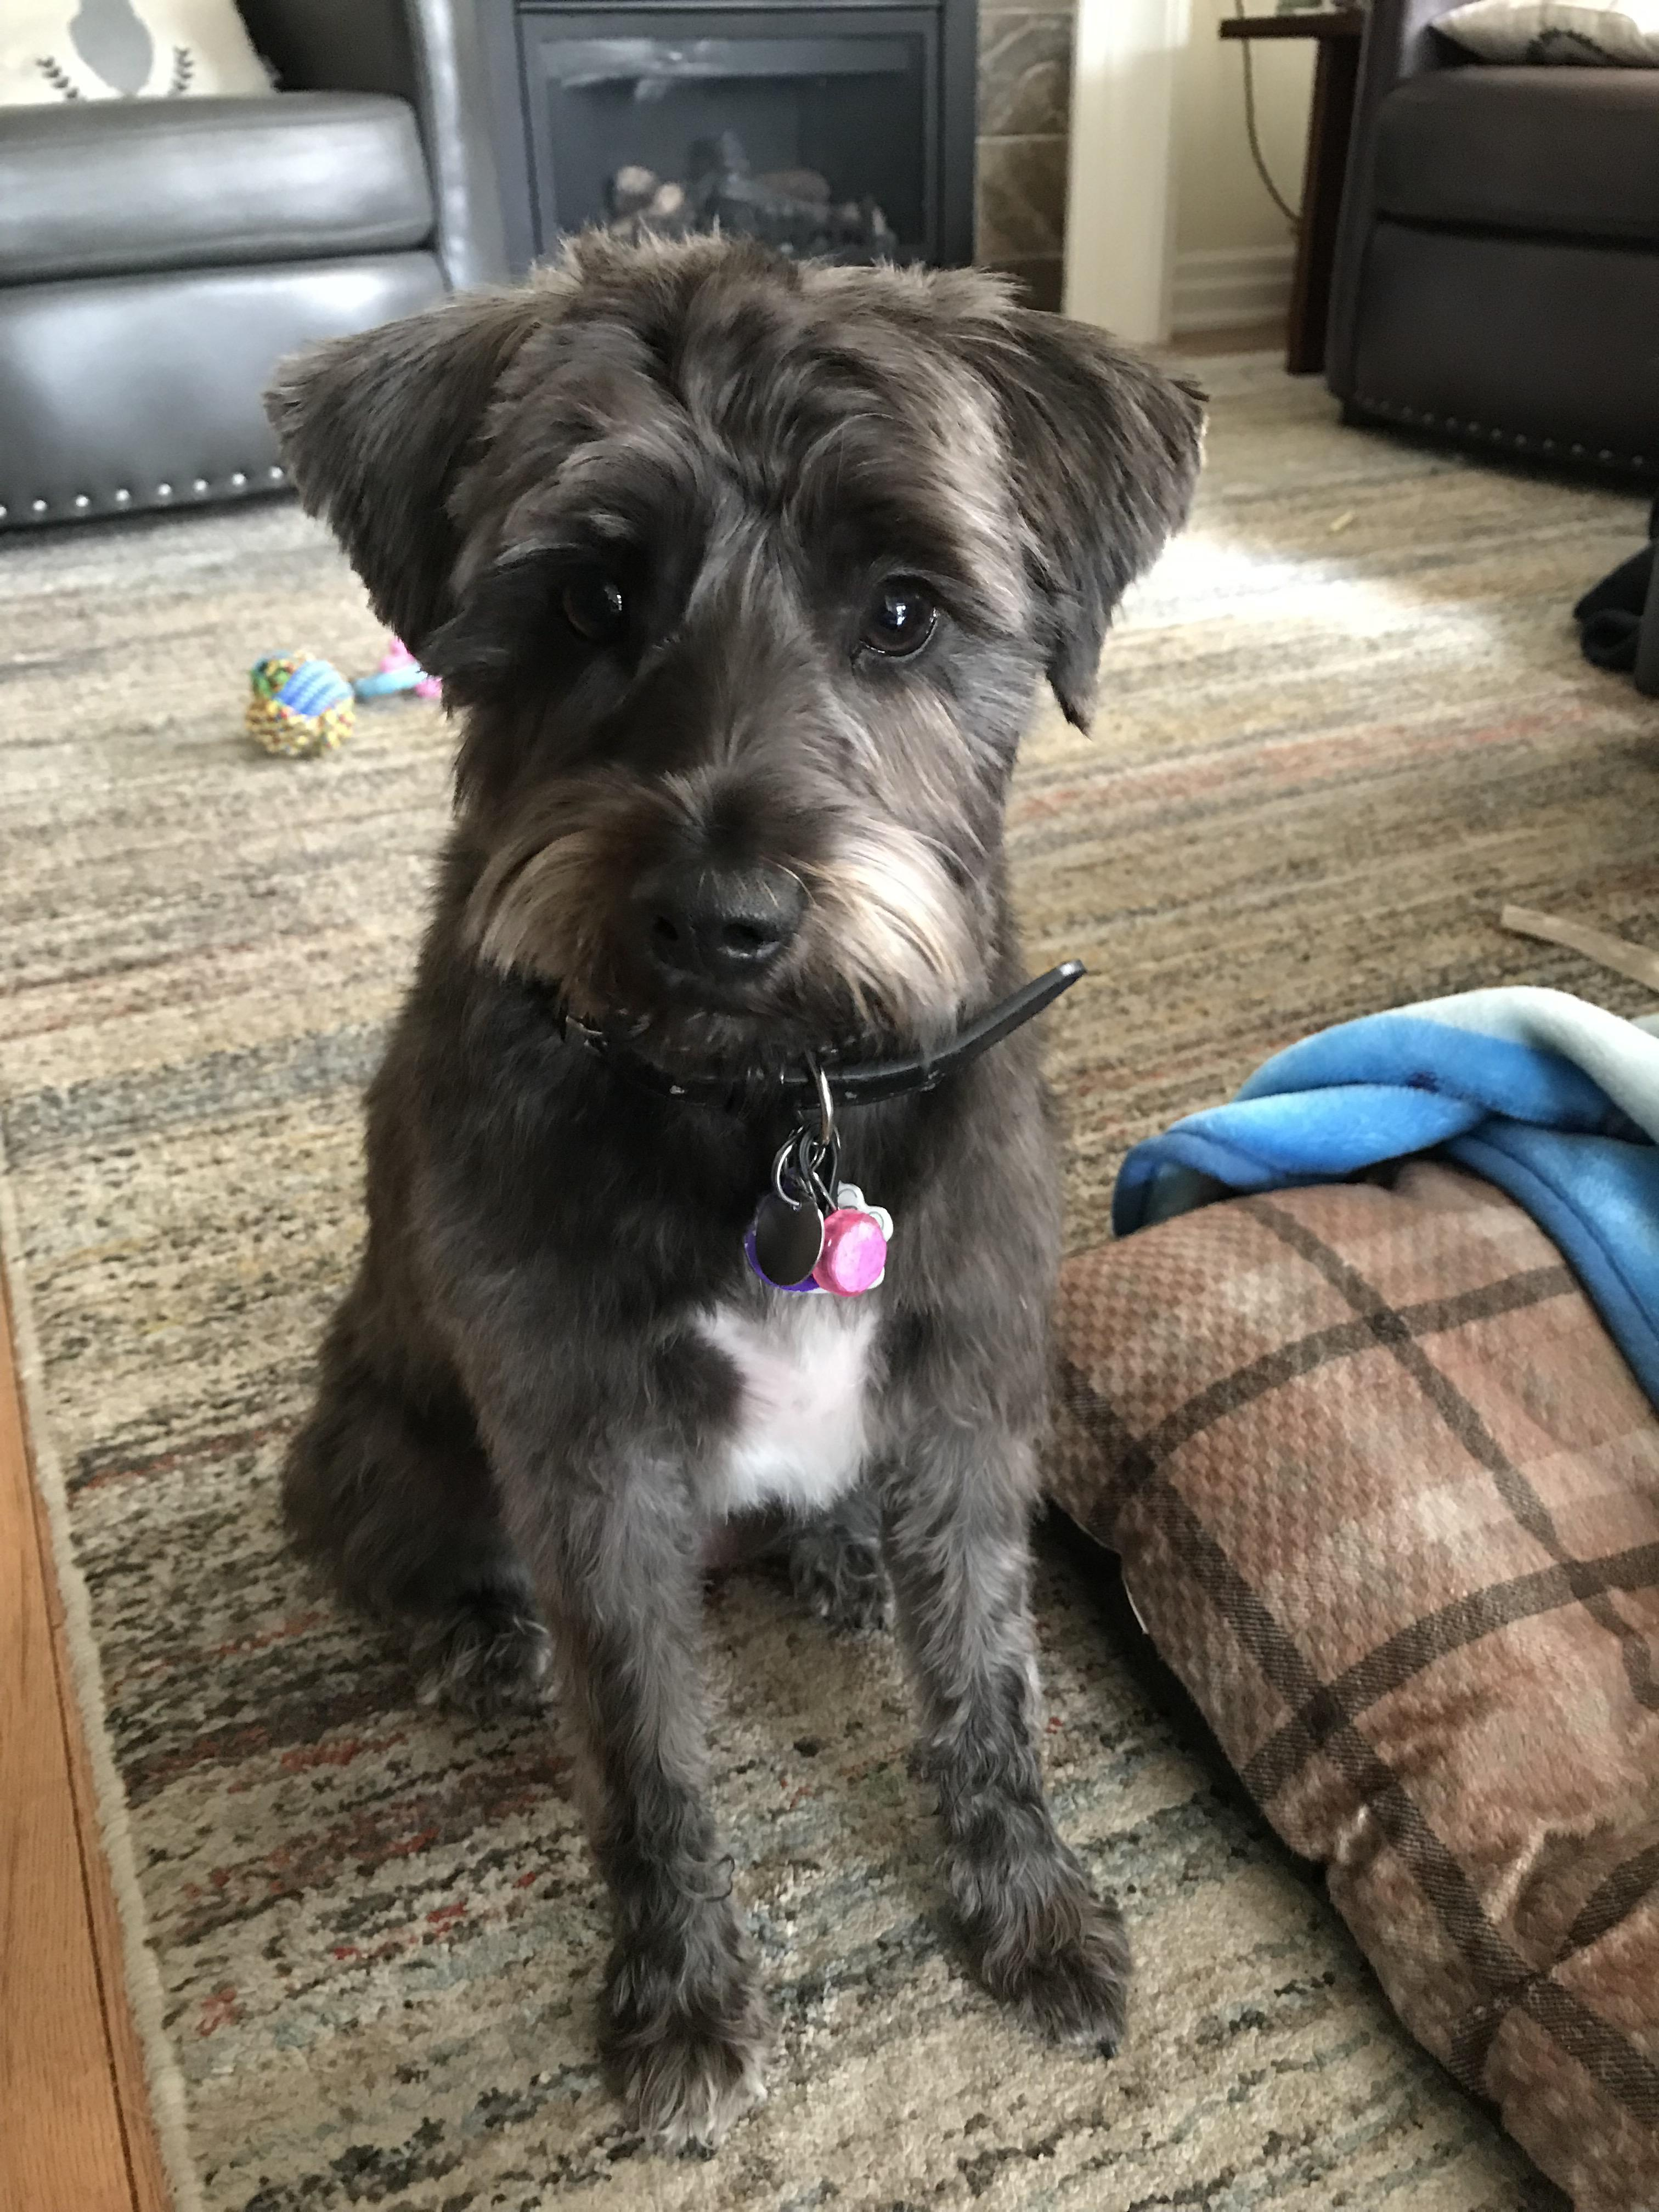 Schnauzer Cut Short : schnauzer, short, Scout, Looking, Adorable, Fresh, Summer, Cut.,,, Won't, Teased, Puppy, Class, Muppet!!, Schnauzers